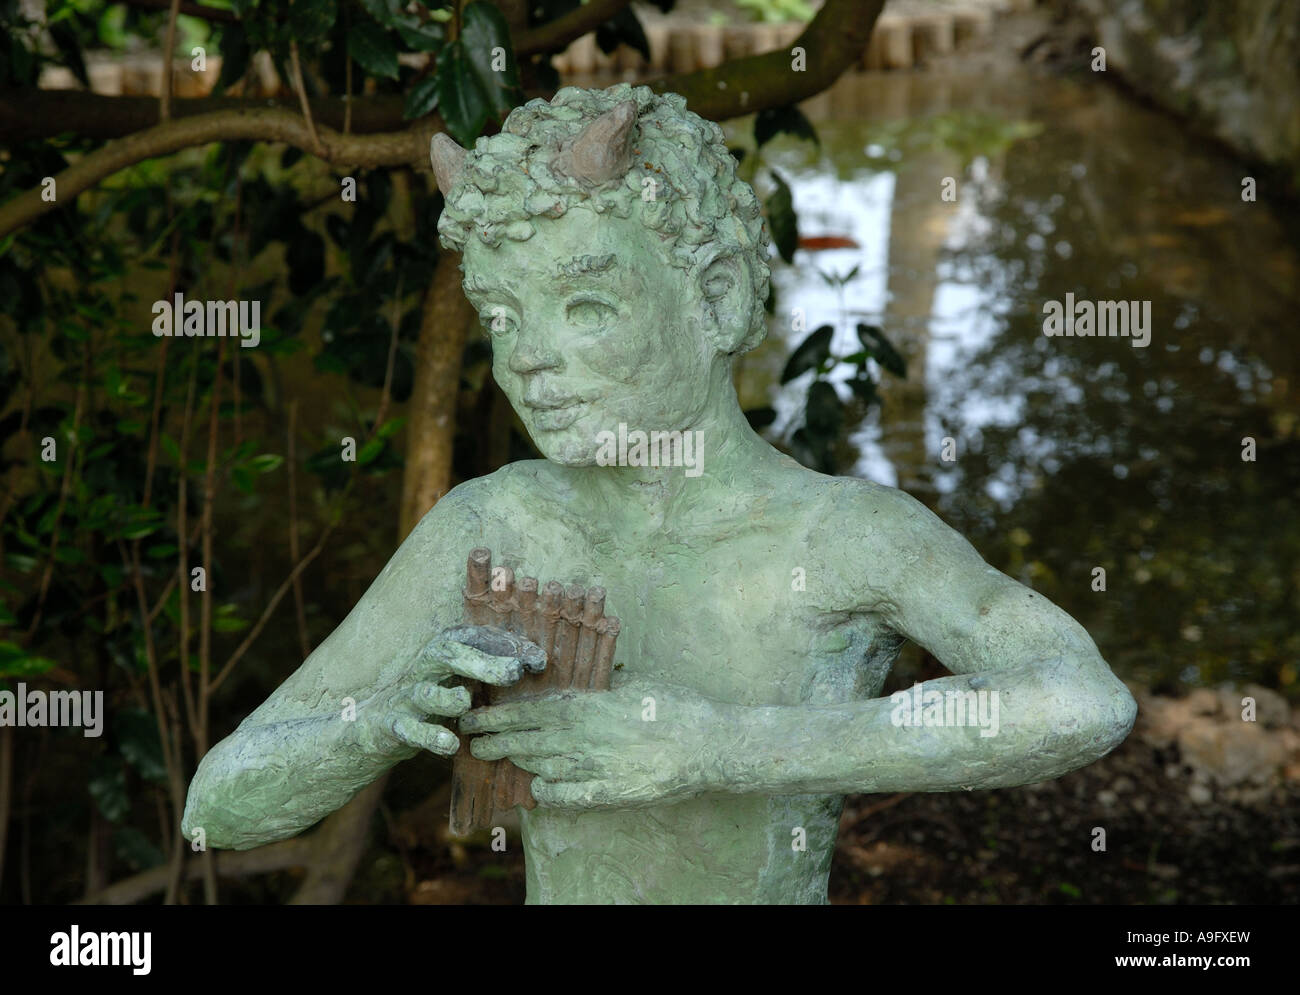 Statue of Pan in the grounds of Pashley Manor in East Sussex. - Stock Image